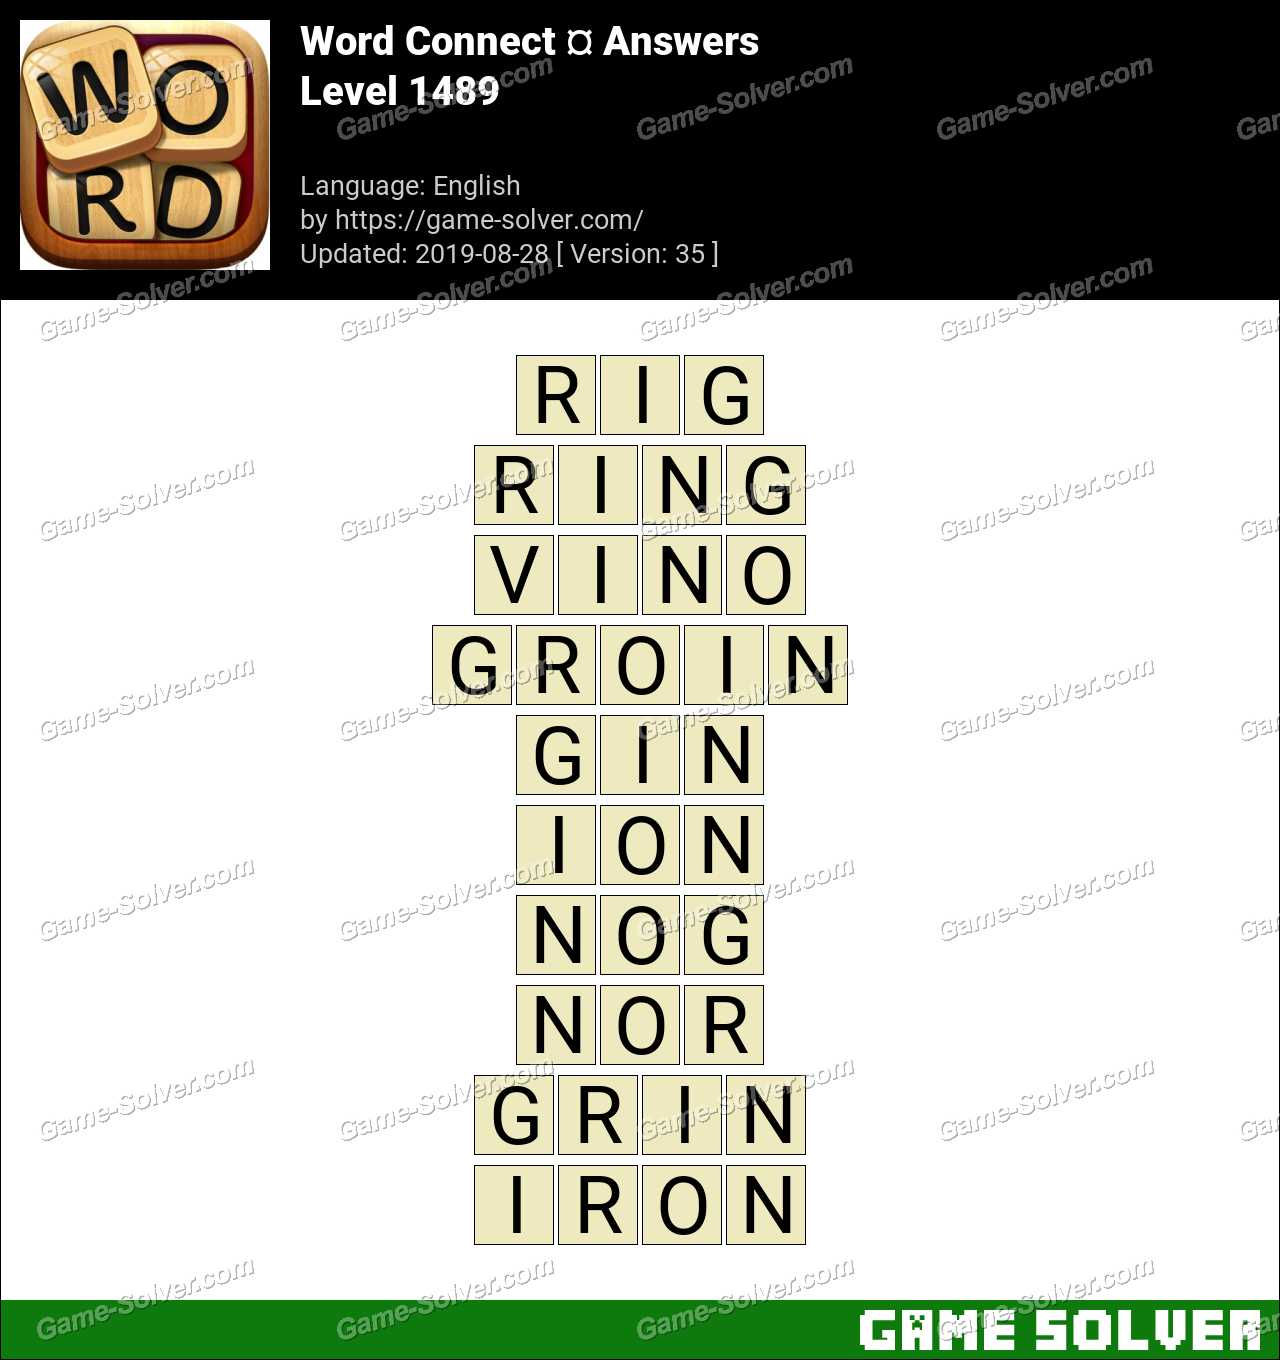 Word Connect Level 1489 Answers